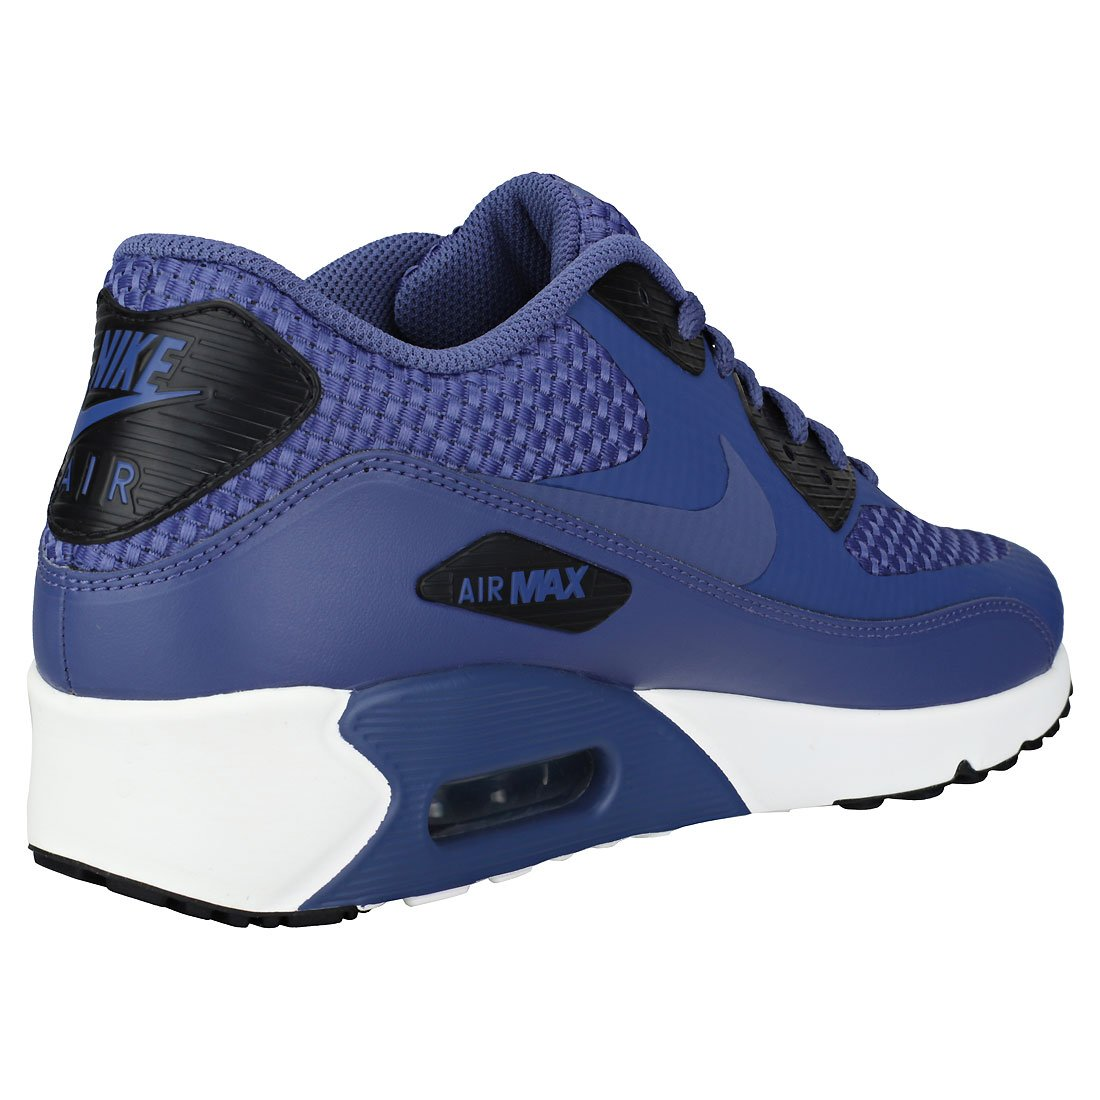 cheap for discount 4a7e2 eac6a Nike Air Max 90 Ultra 2.0 Se Mens Trainers: Amazon.co.uk: Electronics